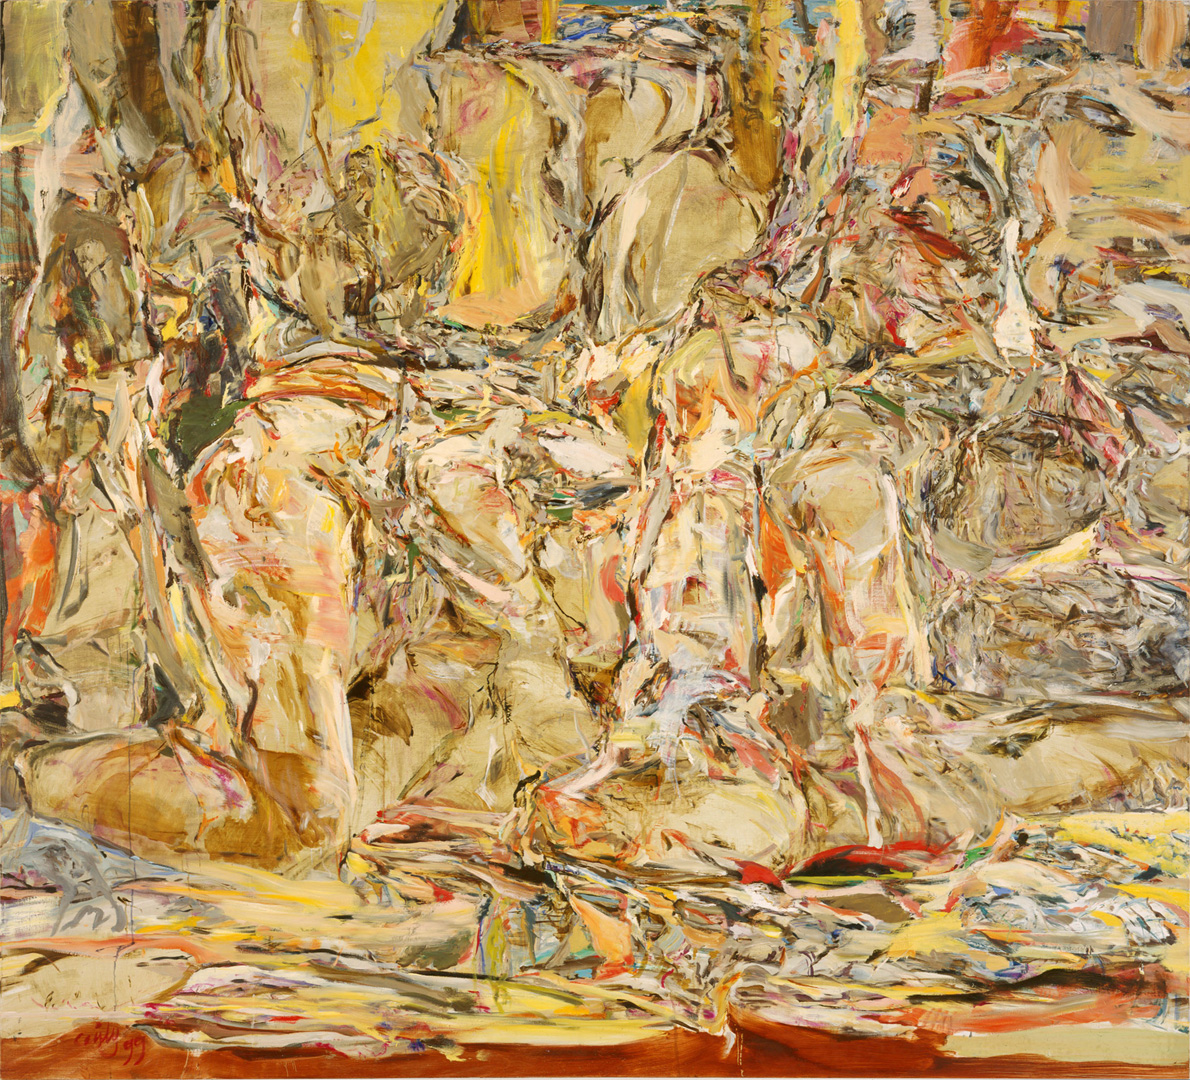 Cecily Brown - Tender is the Night, 1999, oil on linen